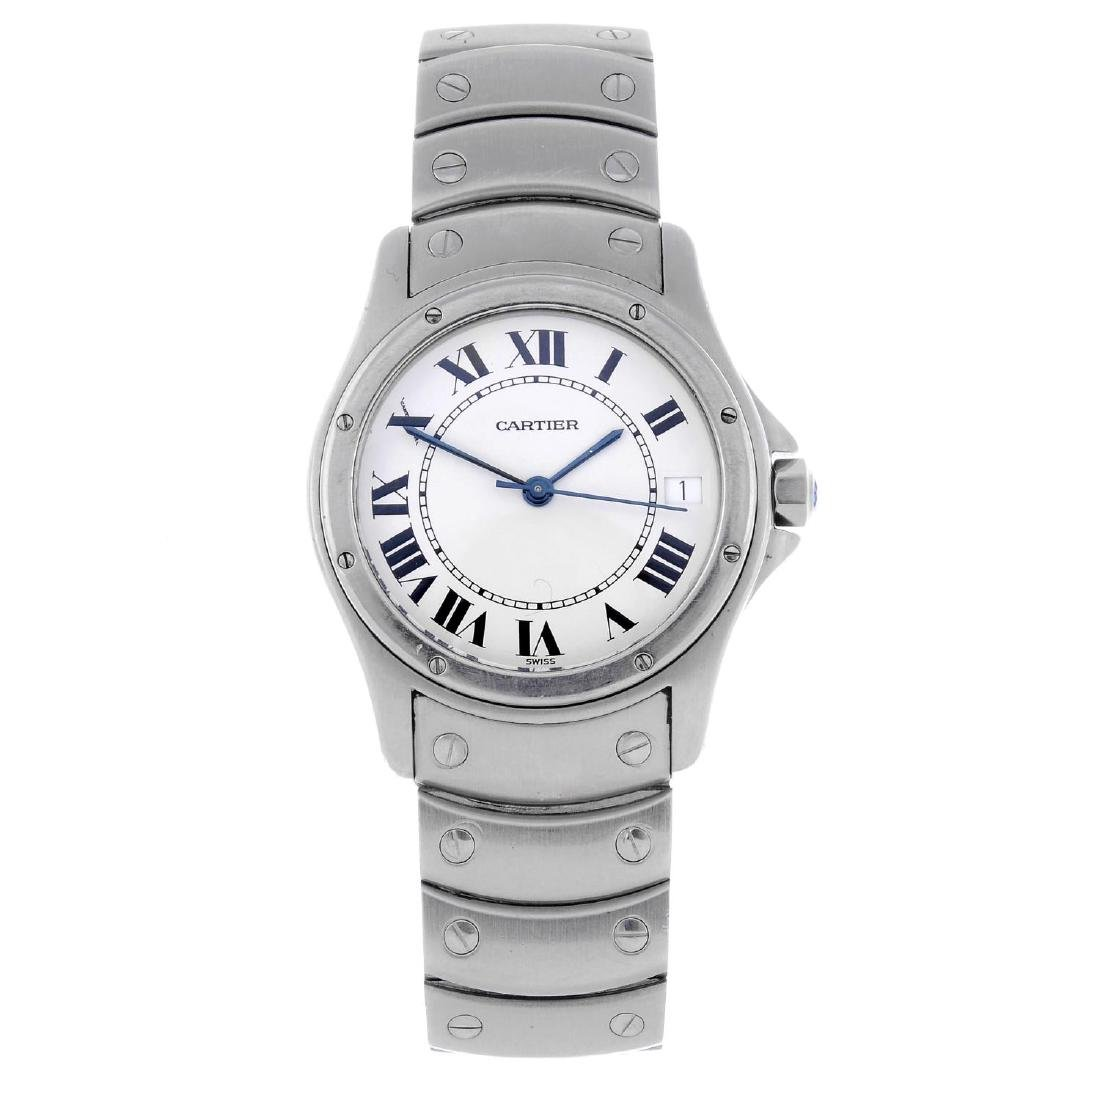 CARTIER - a Cougar bracelet watch. Stainless steel case